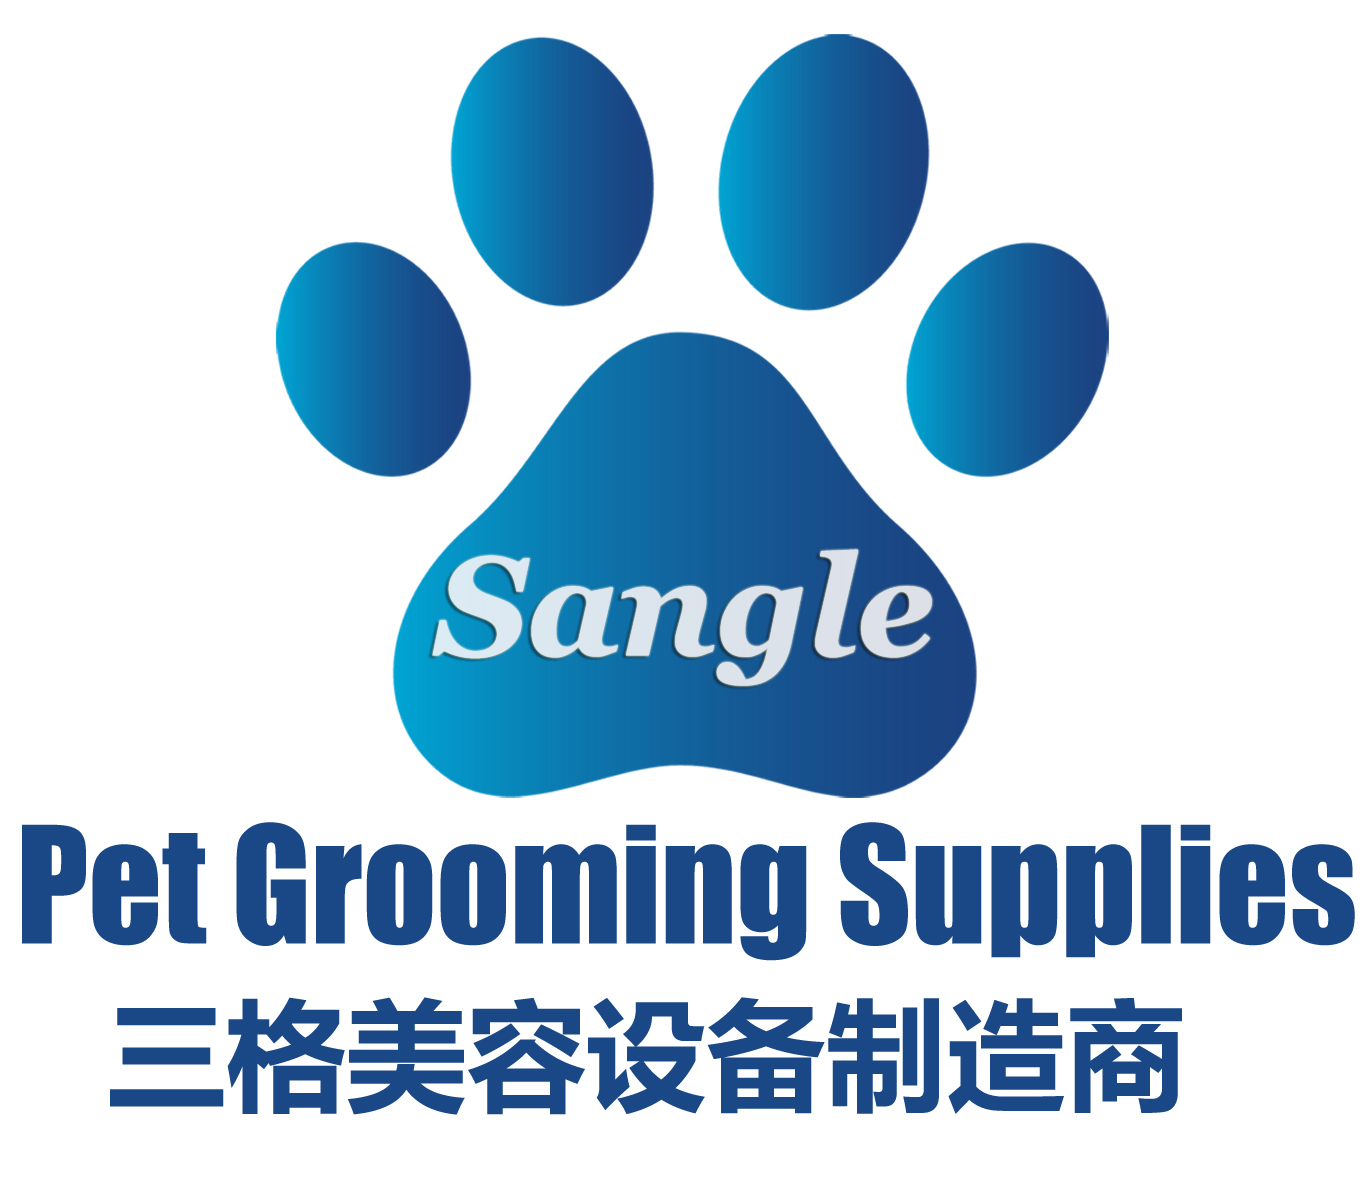 Sangle Pet Grooming Supplies Manufacture